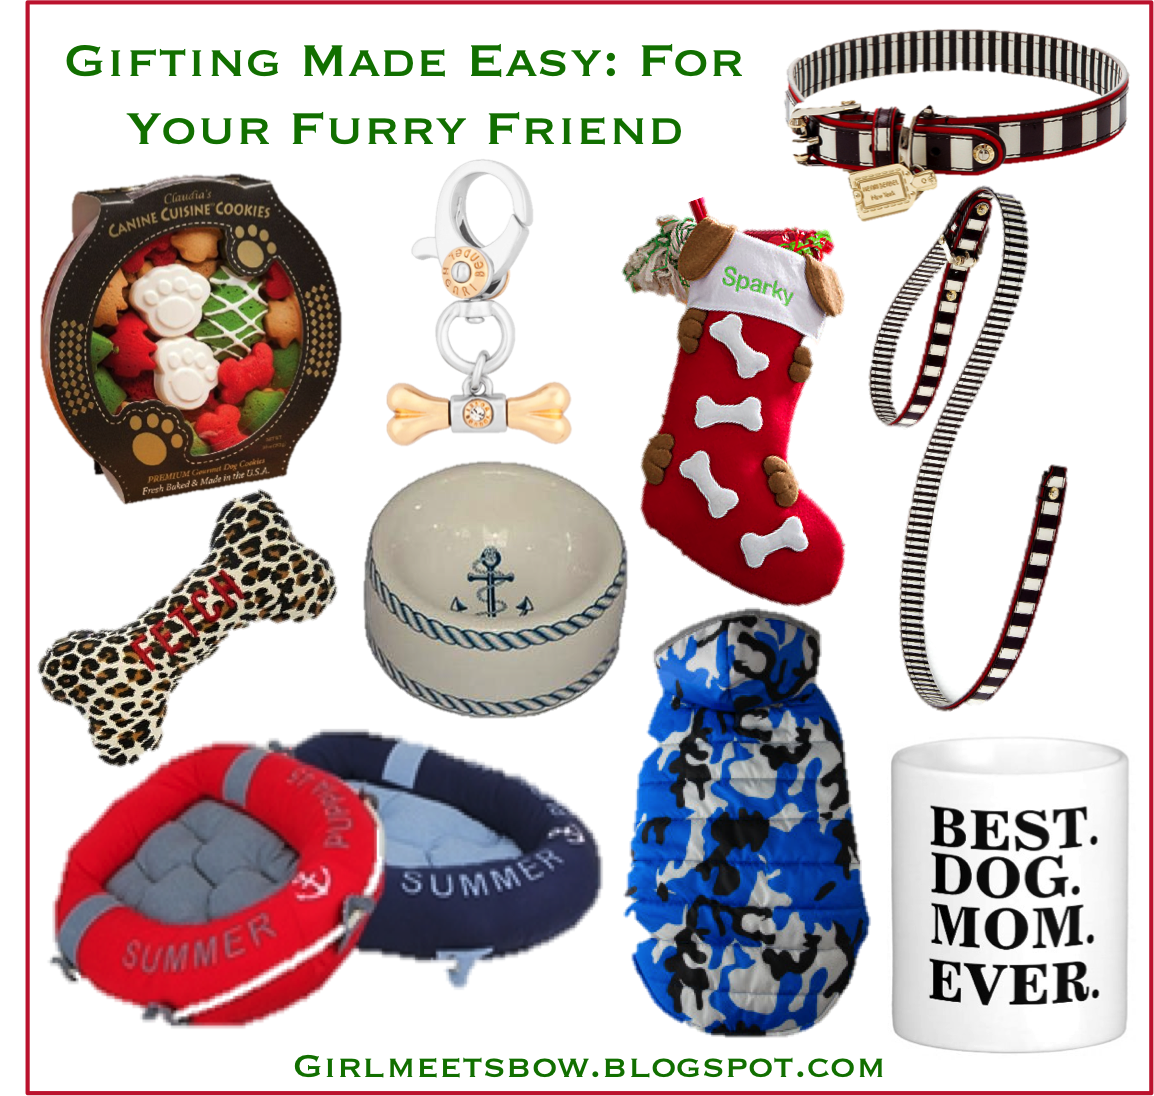 Gifting Made Easy: For Your Furry Friend